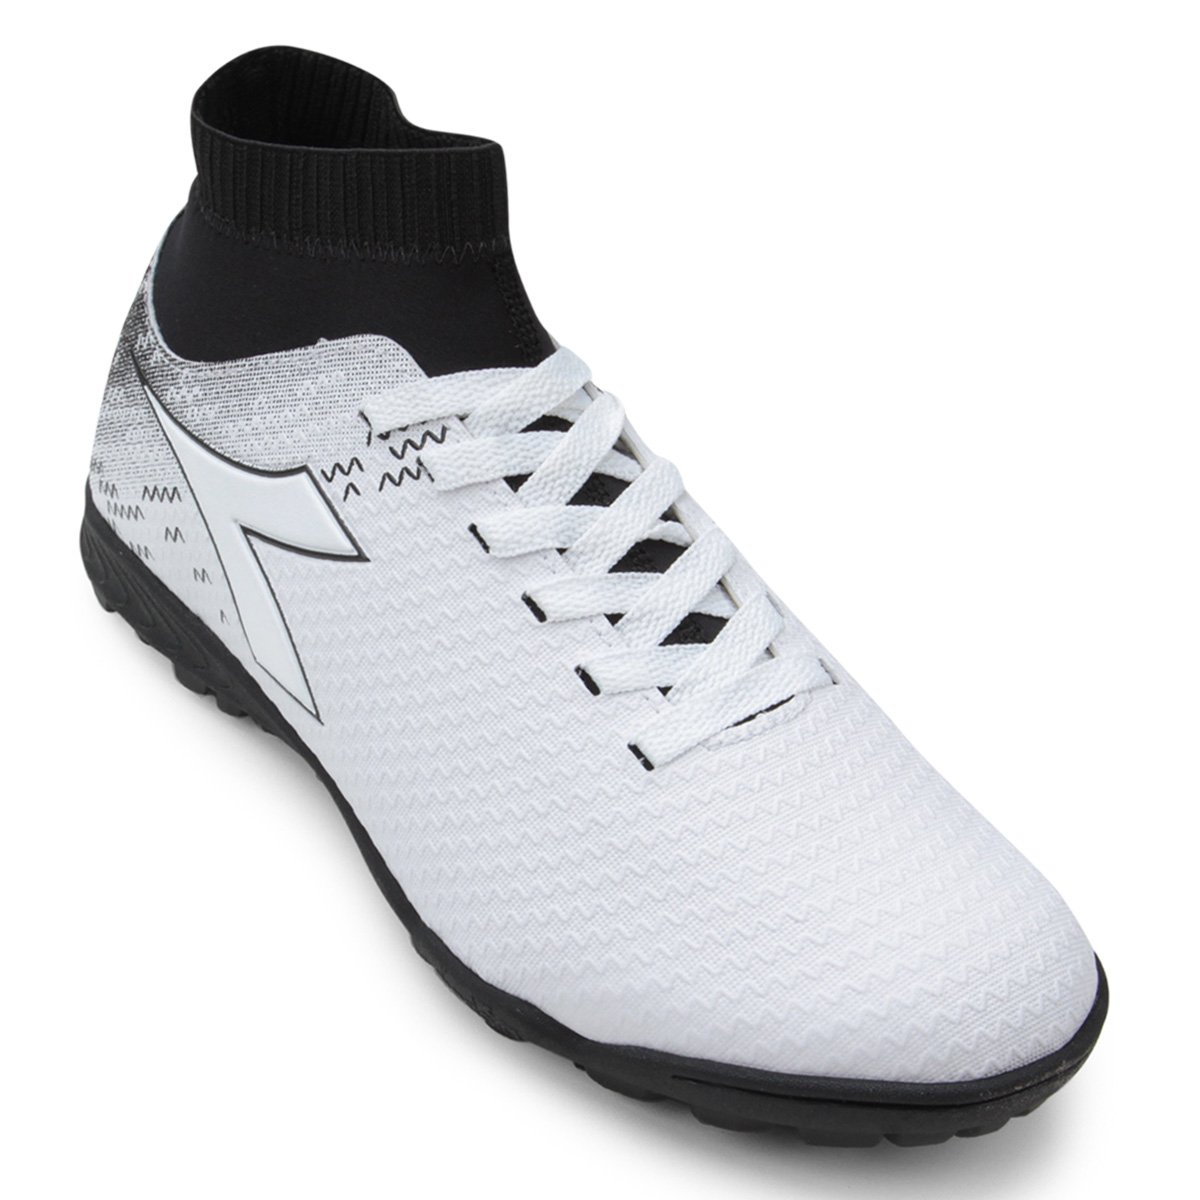 a76465097e Chuteira Society Diadora Slip On - Branco e Preto | Shop Vasco